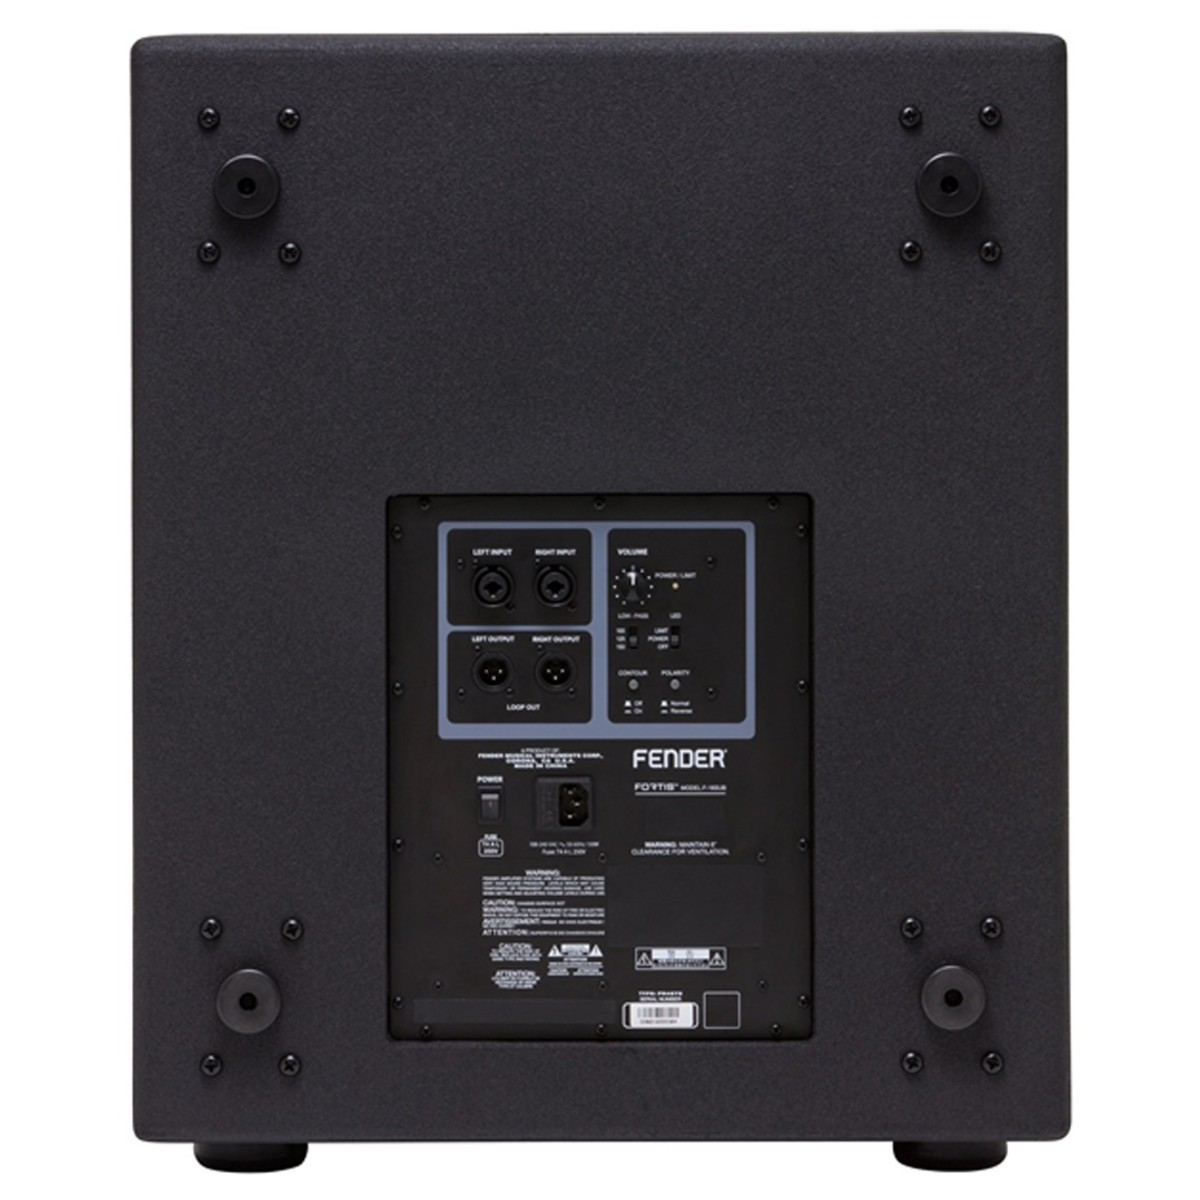 Fender Fortis F 18sub 18 Powered Subwoofer At Gear4music